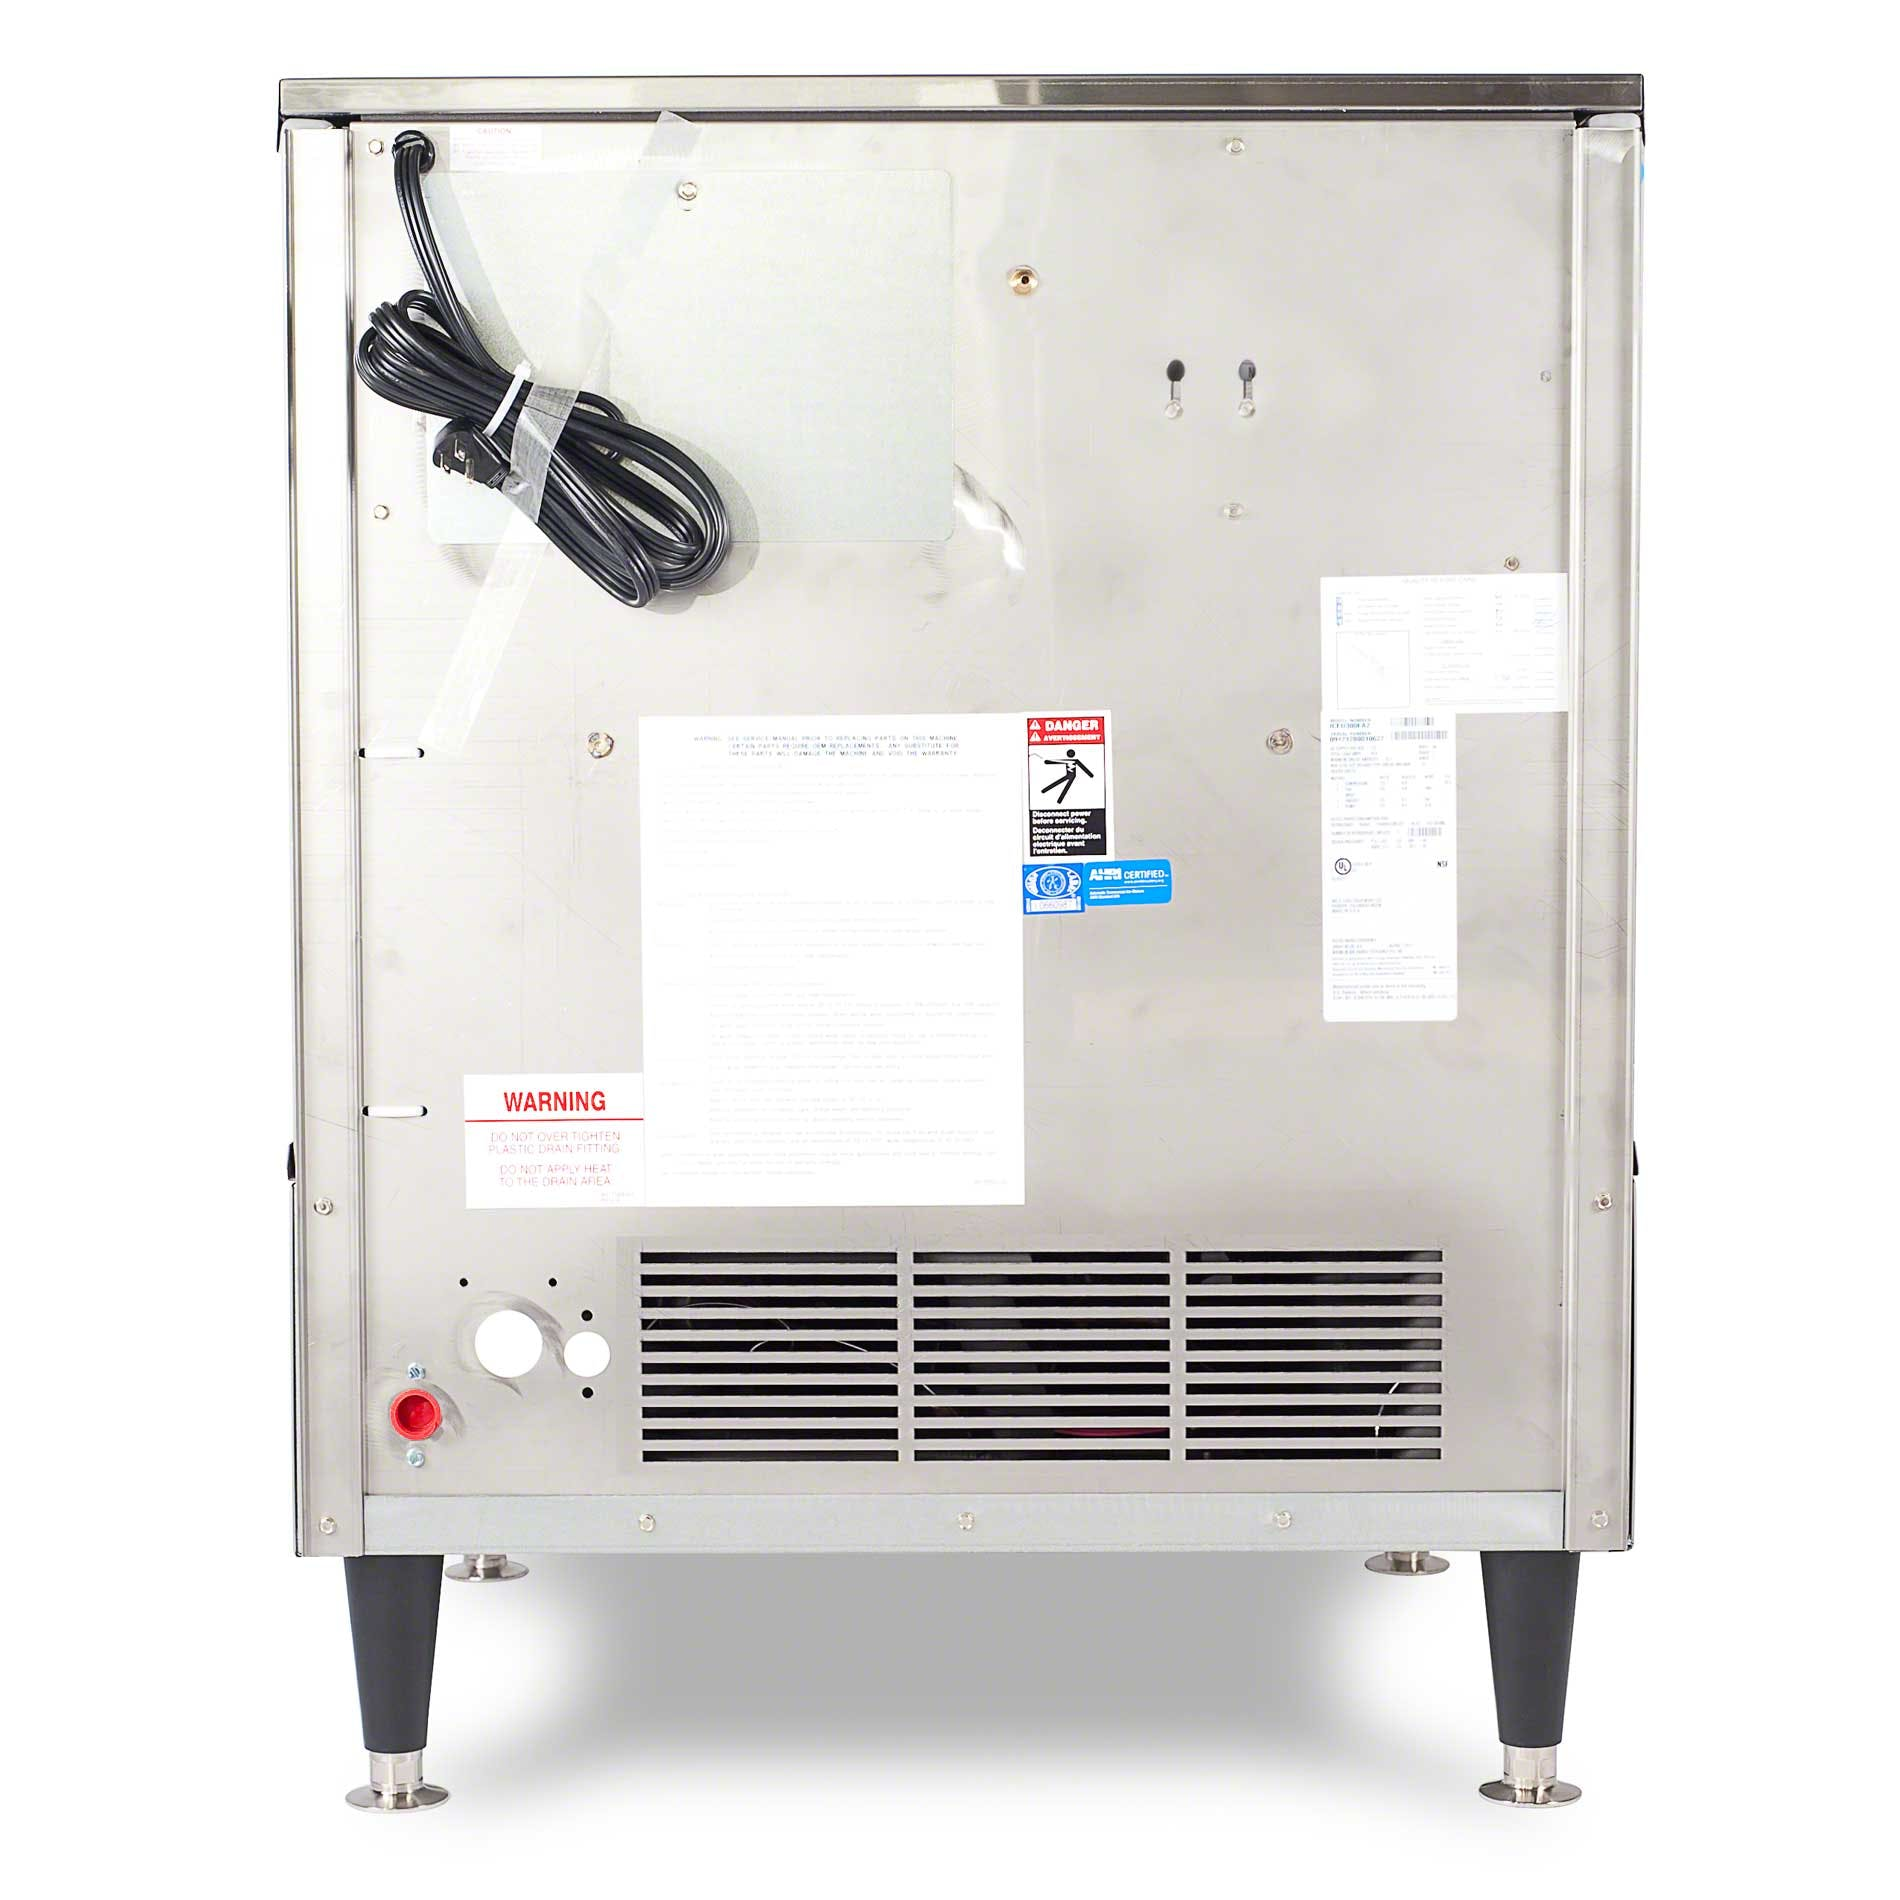 Ice-O-Matic - ICEU150FA 185 lb Self-Contained Full Cube Ice Machine - sold by Food Service Warehouse